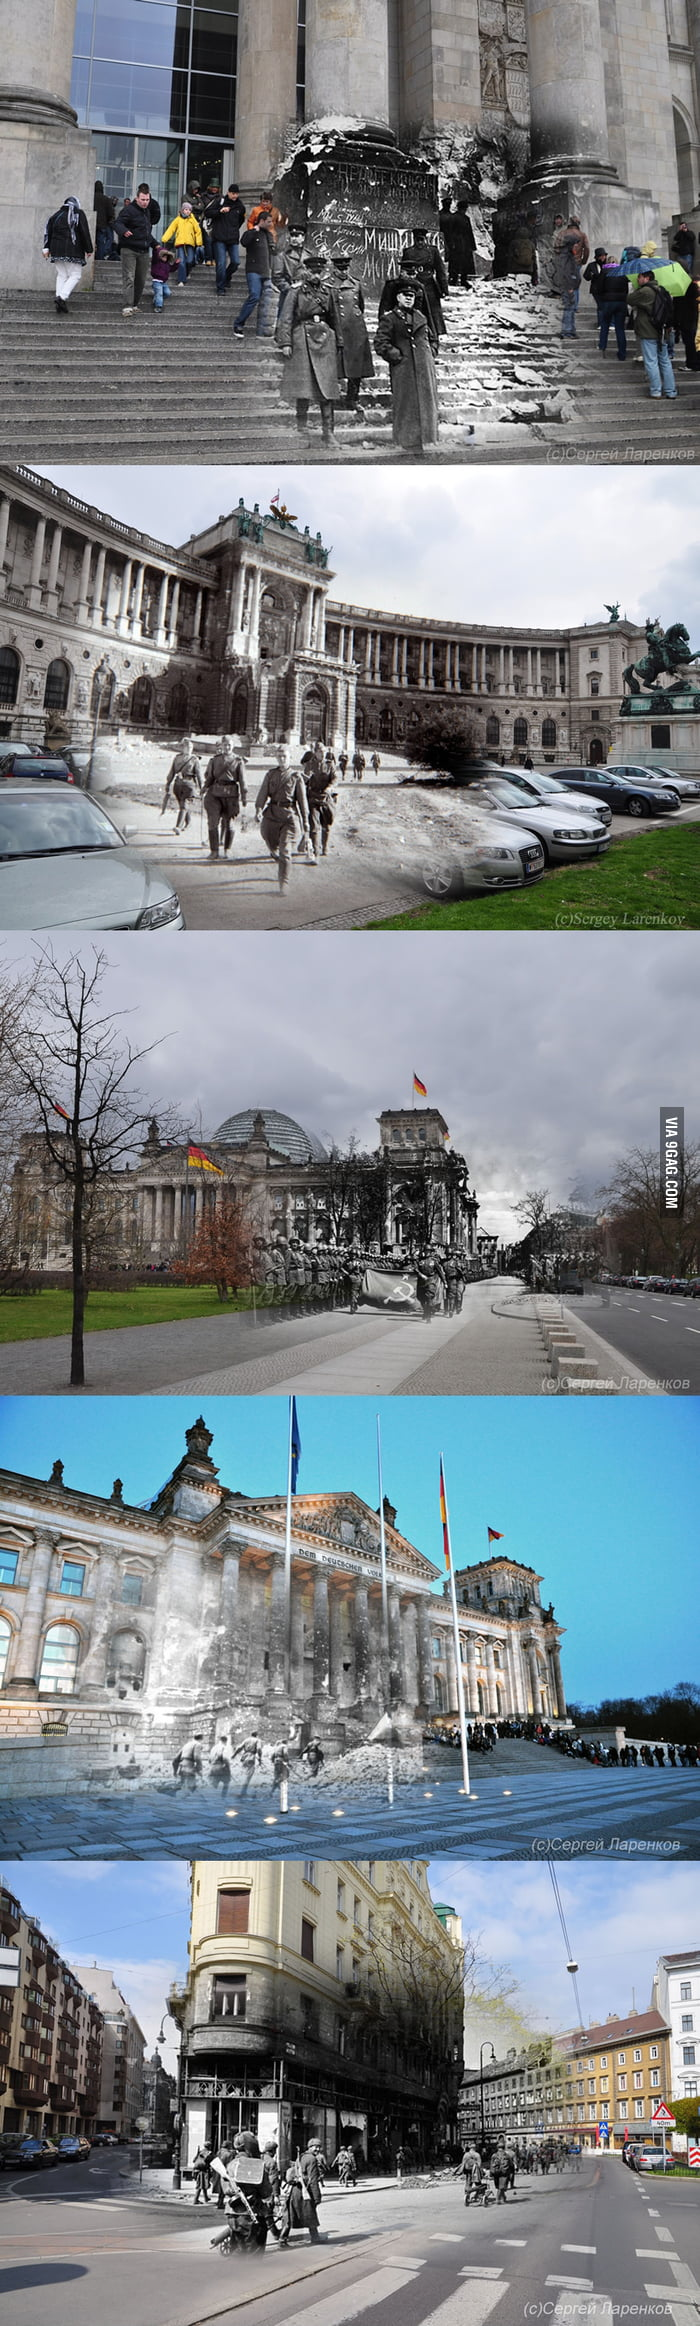 From 1945 to 2010